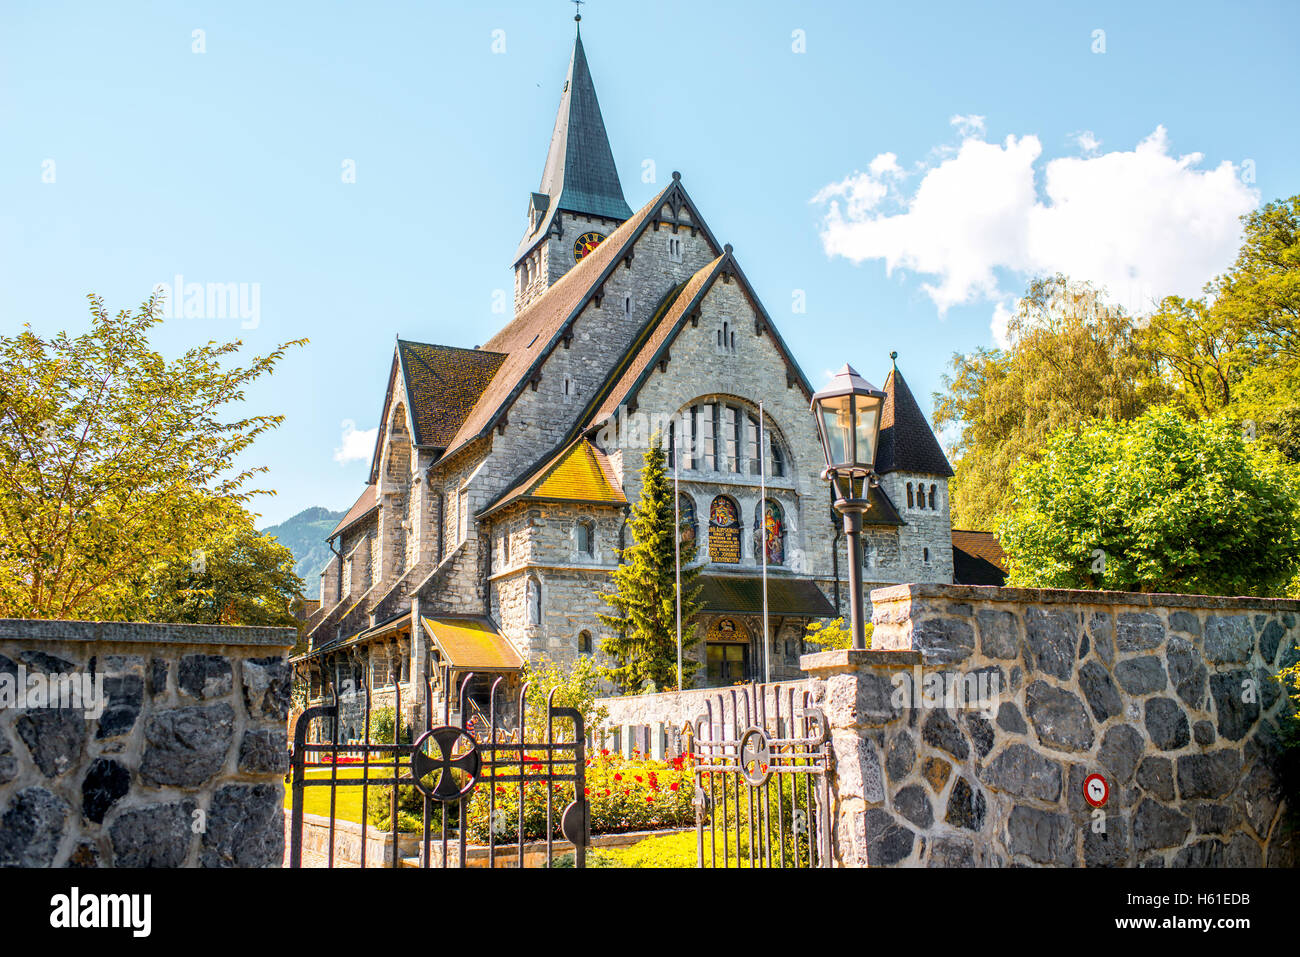 Church in Liechtenstein - Stock Image